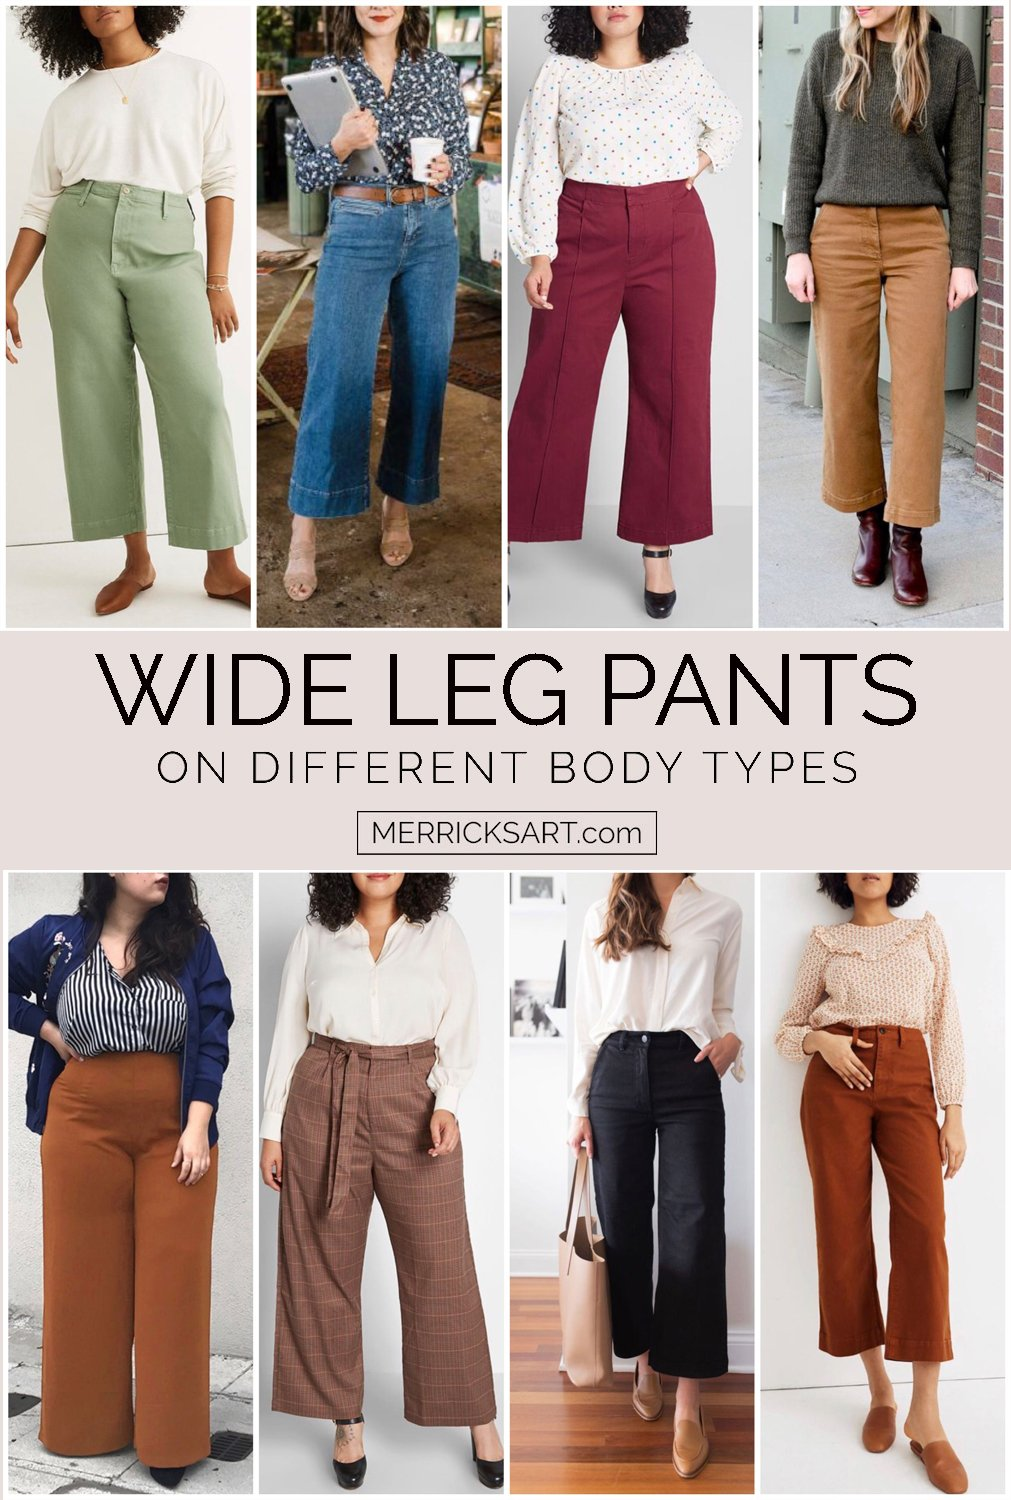 outfits with wide leg pants on different body types